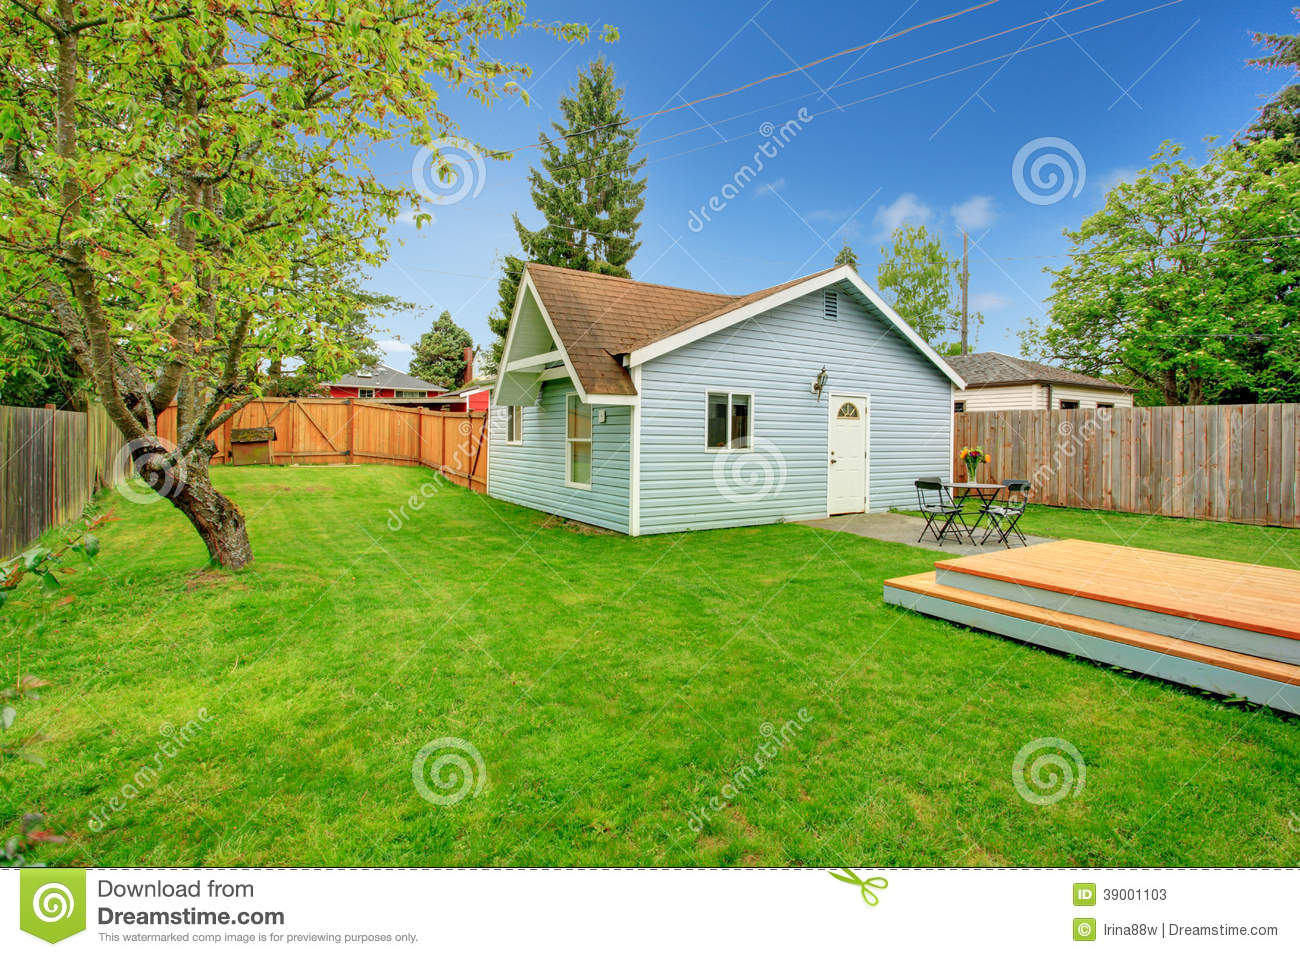 Fenced Backyard With Small Patio Area Stock Photo - Image